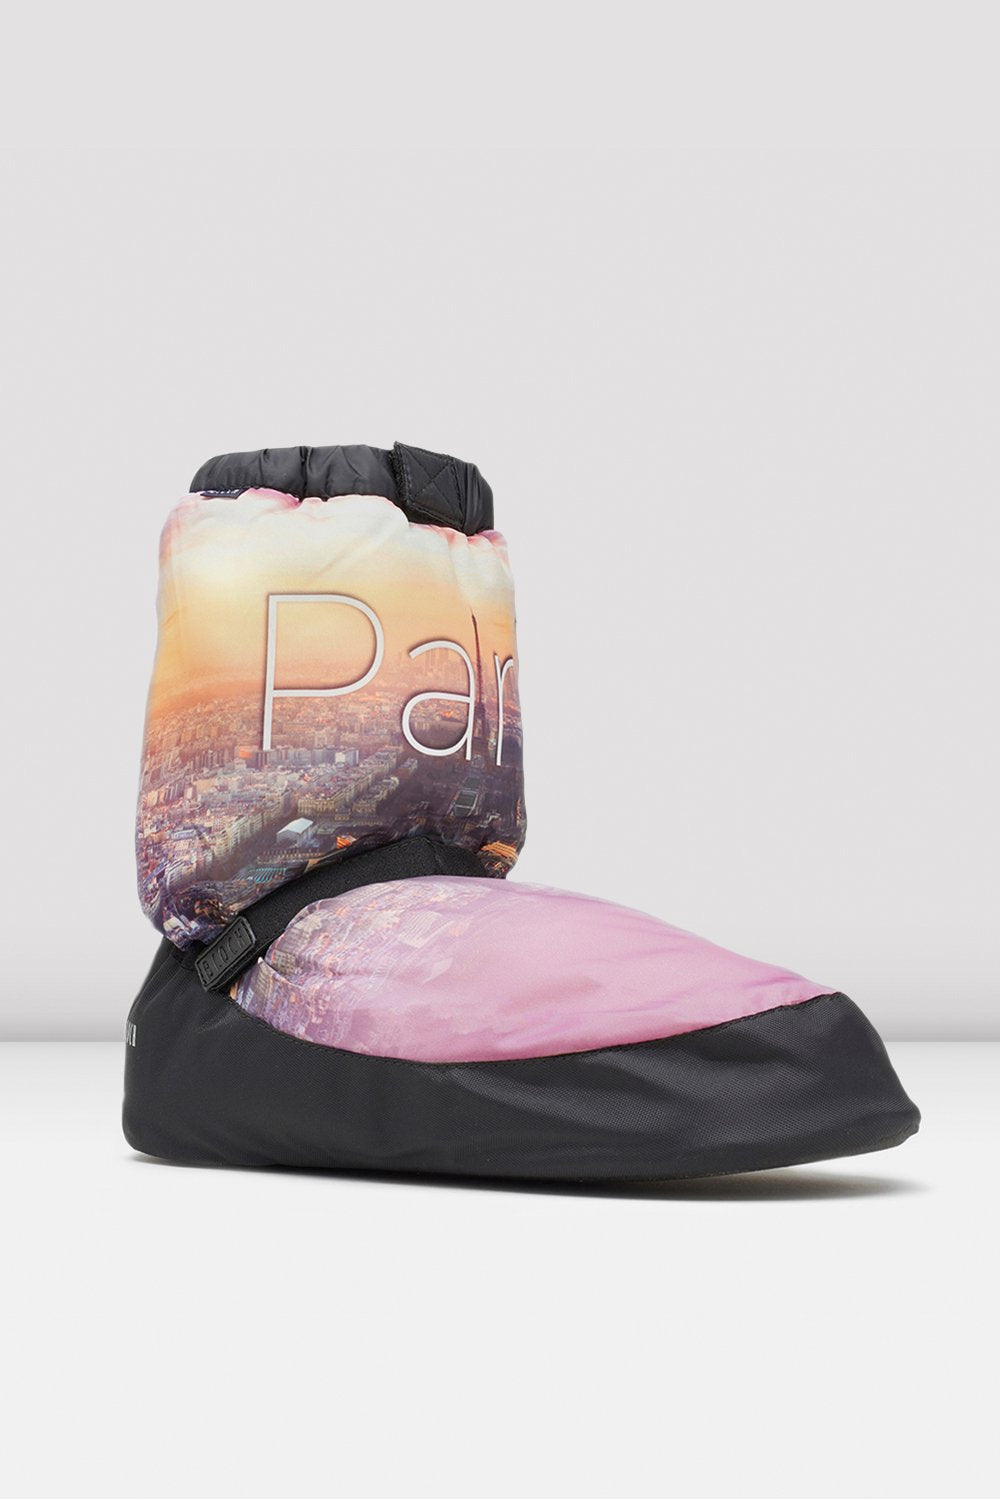 Paris City Scape Adult Warm Up Booties